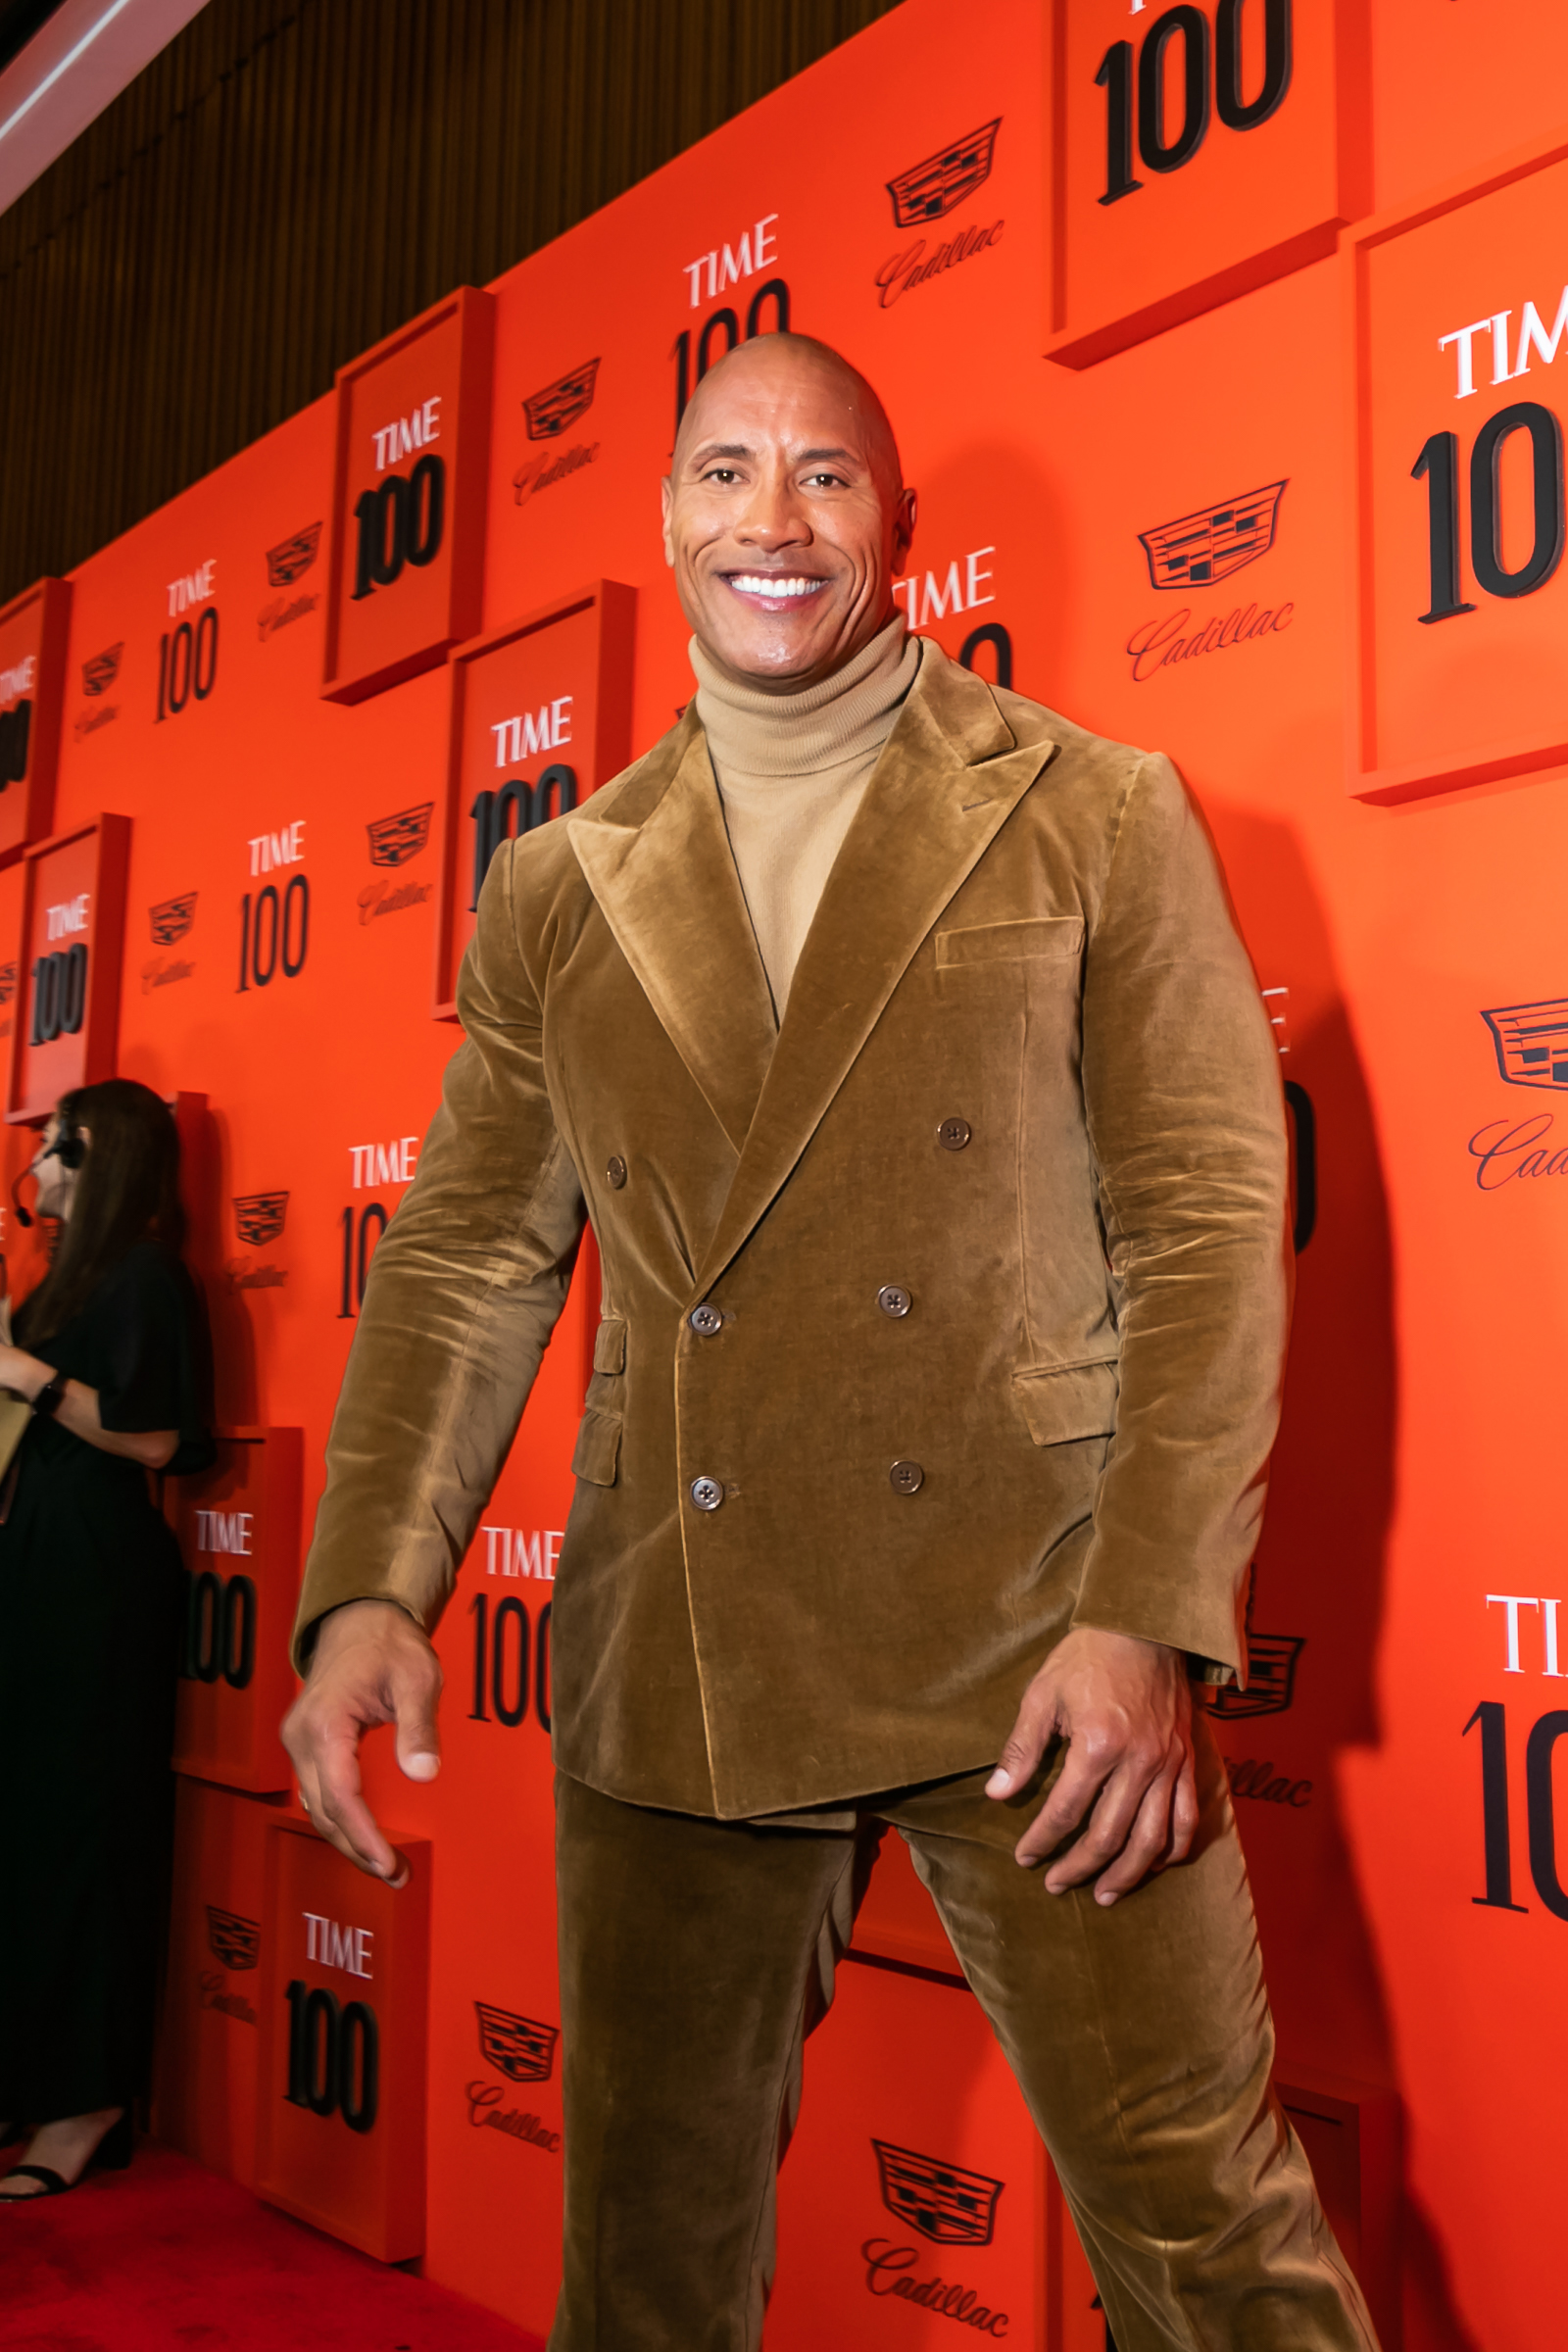 Dwayne the Rock Johnson at the Time 100 Gala at Jazz at Lincoln Center in New York City on April 23, 2019.